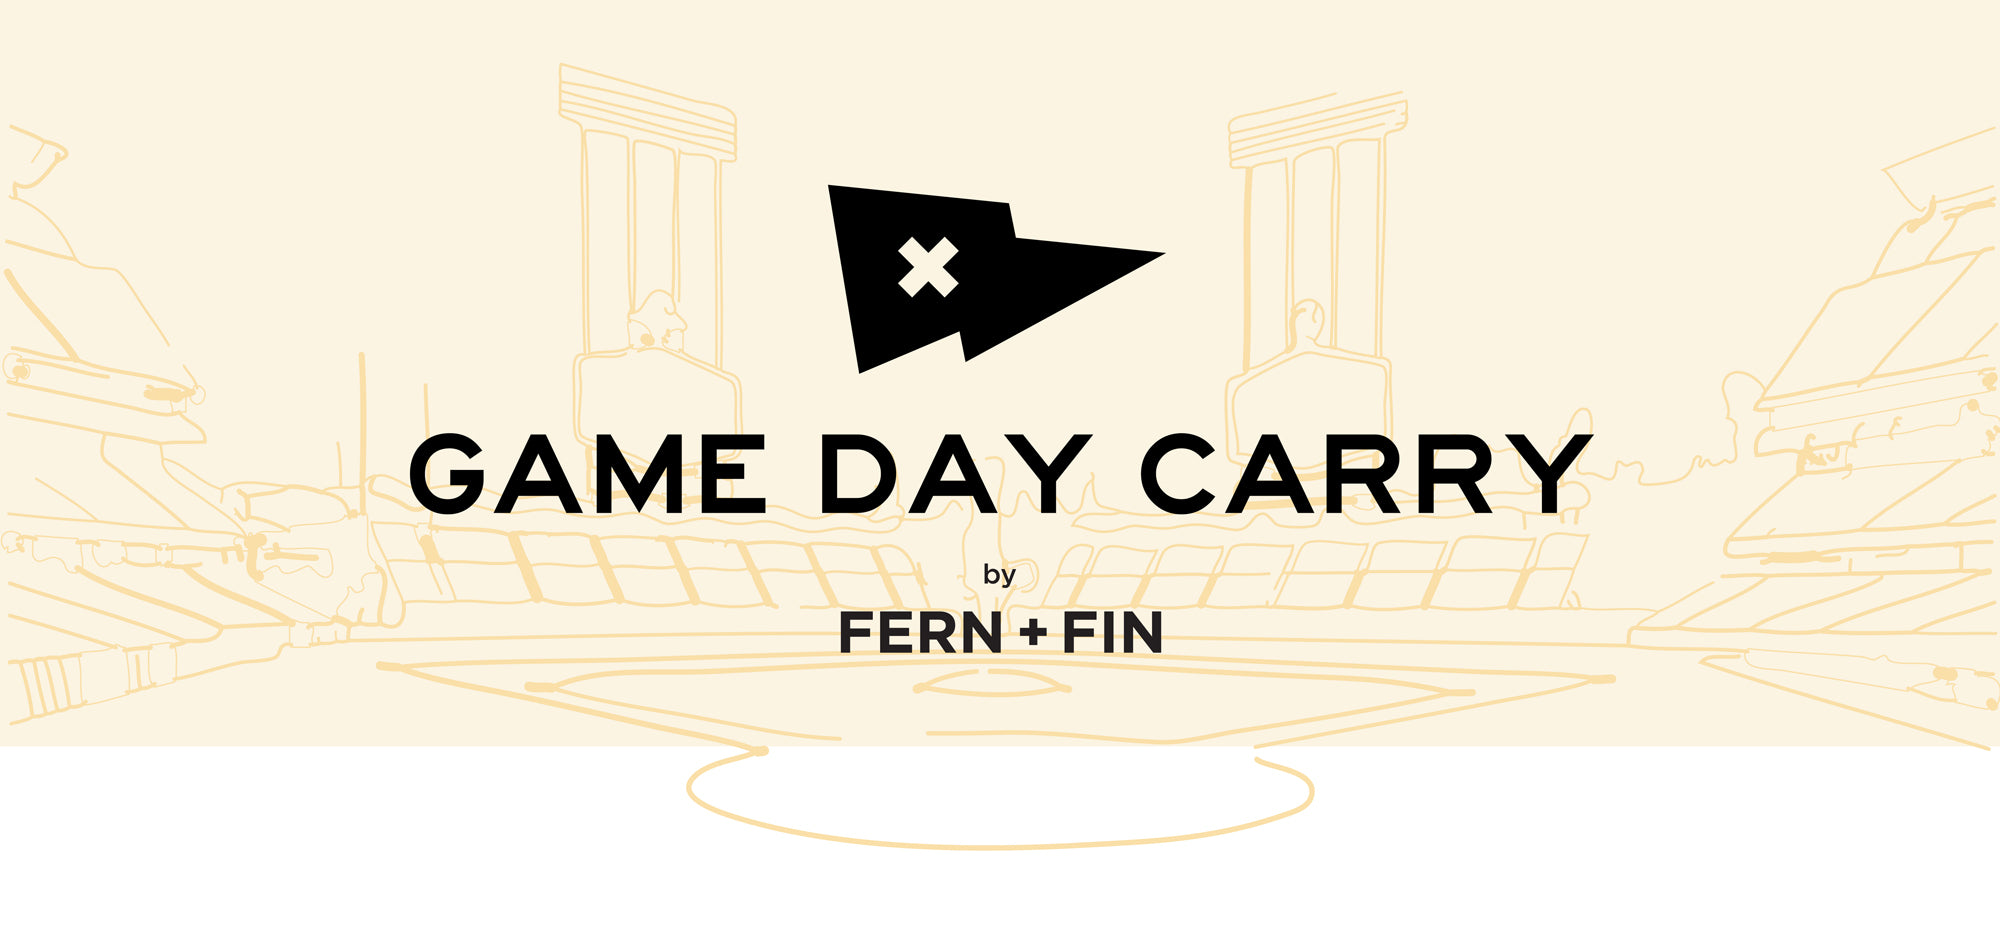 Game Day Carry by Fern + Fin